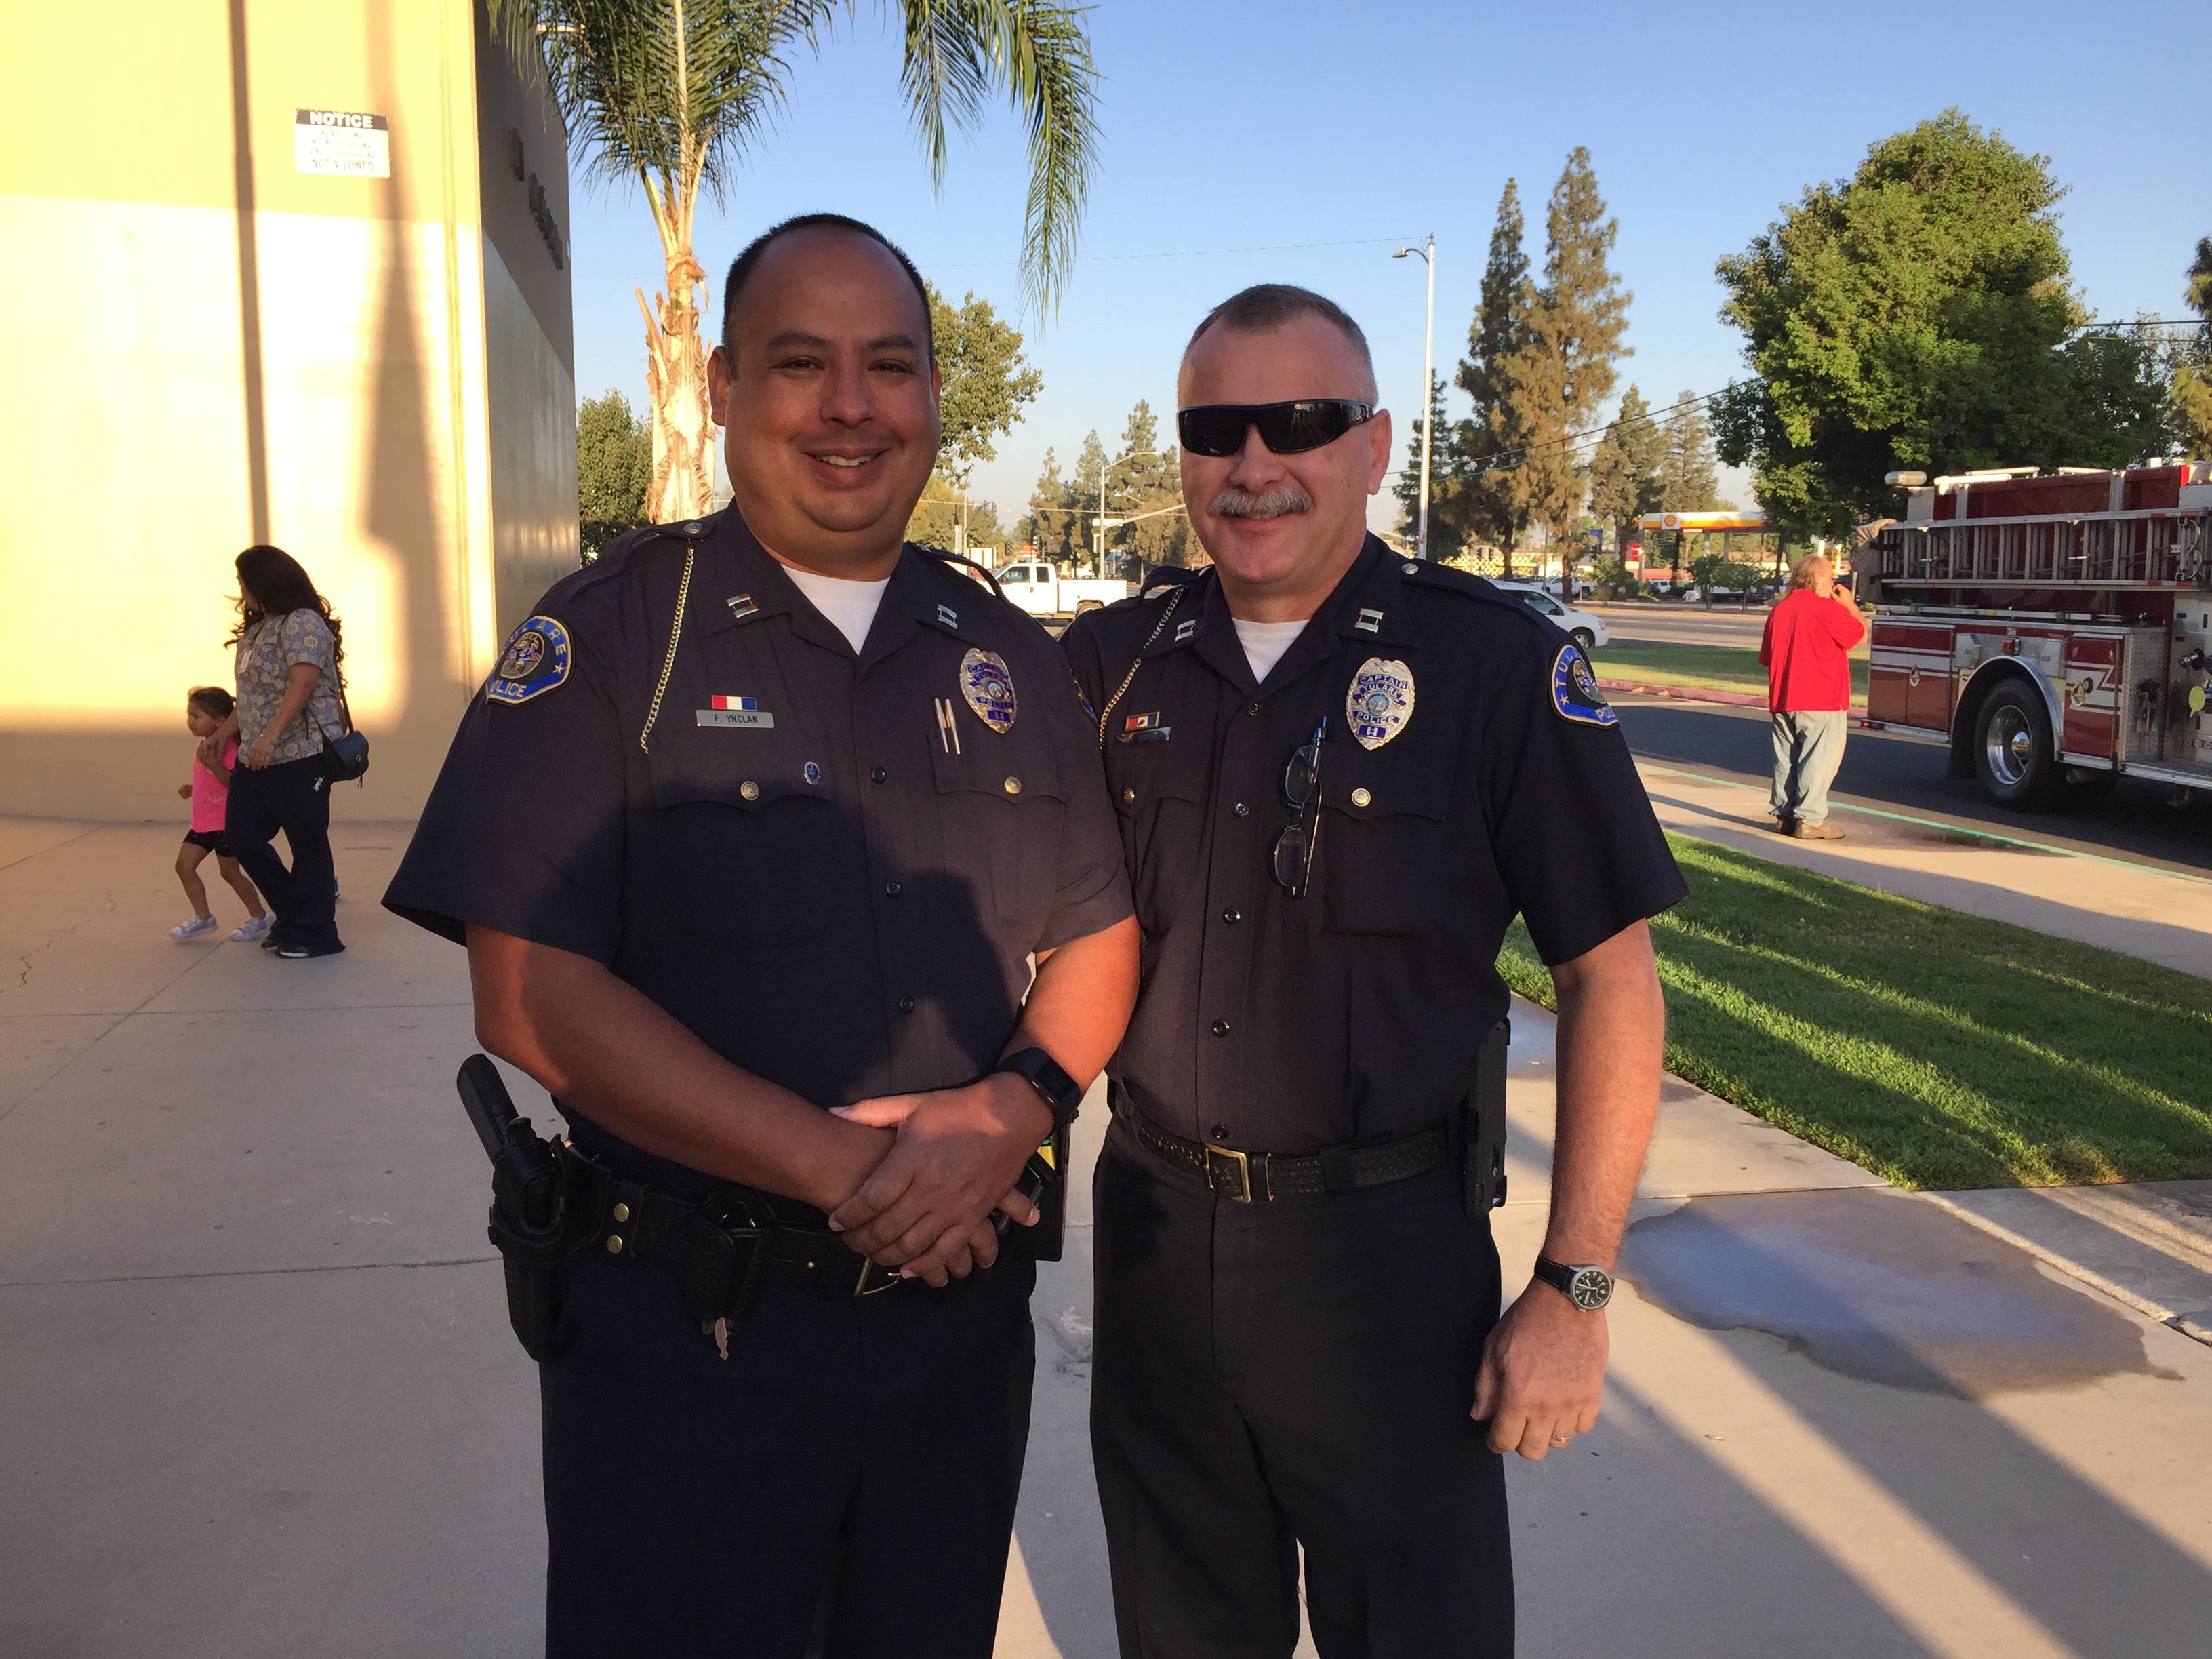 Tulare Police Capt. Fred Ynclan, left, and Interim Police Chief Barry Jones at the 2018 Tulare 9-11 Memorial Service.